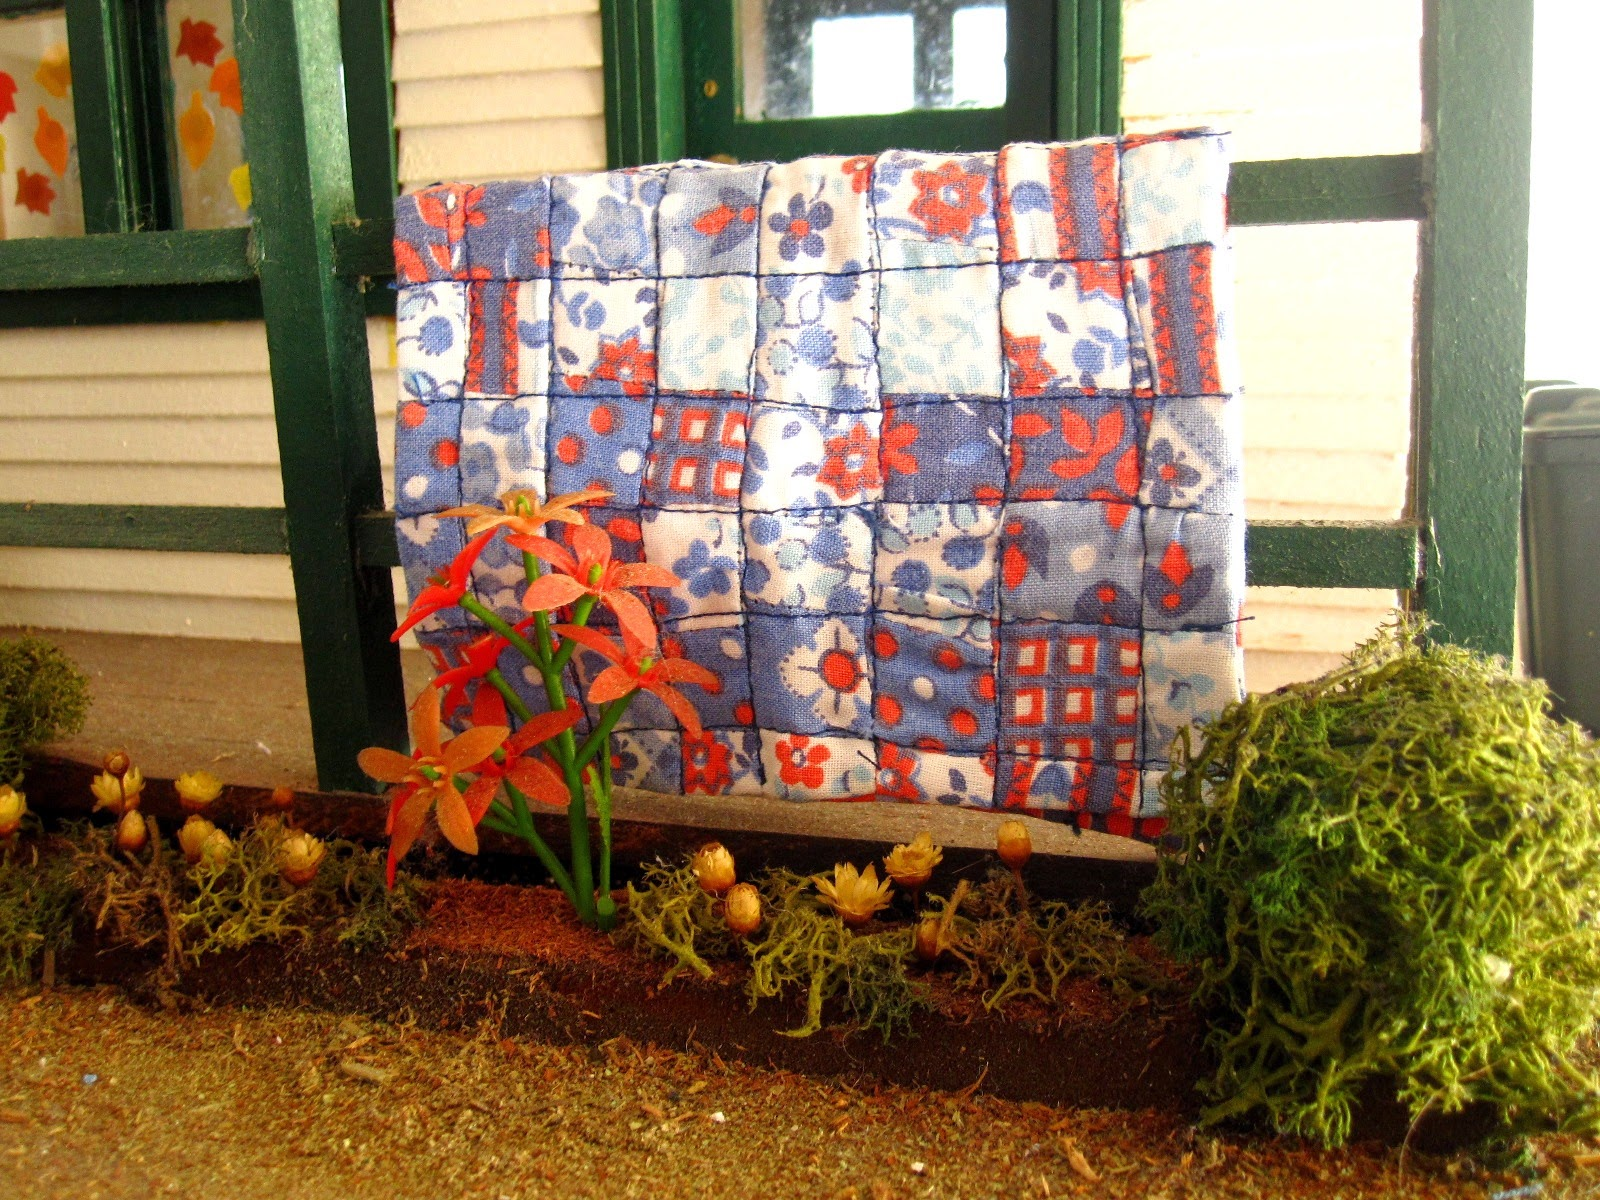 Vintage miniature quilt displayed over the front porch railing of a miniature school building.